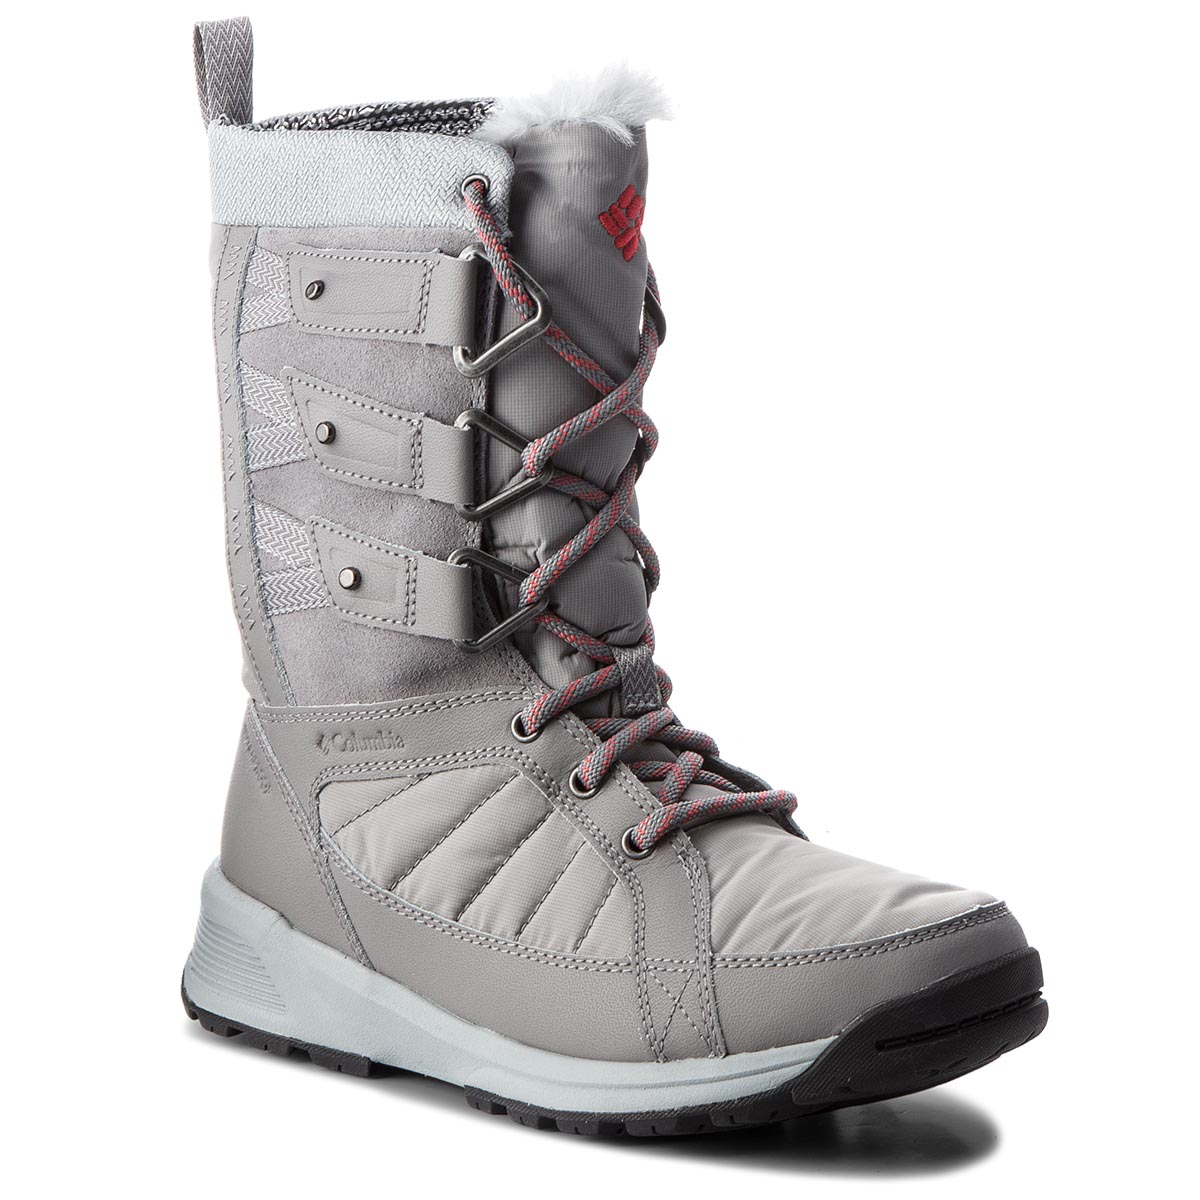 Cizme de zăpadă COLUMBIA - Meadows Shorty Omni-Heat 3D BL5967 Monument/Sunset Red 036